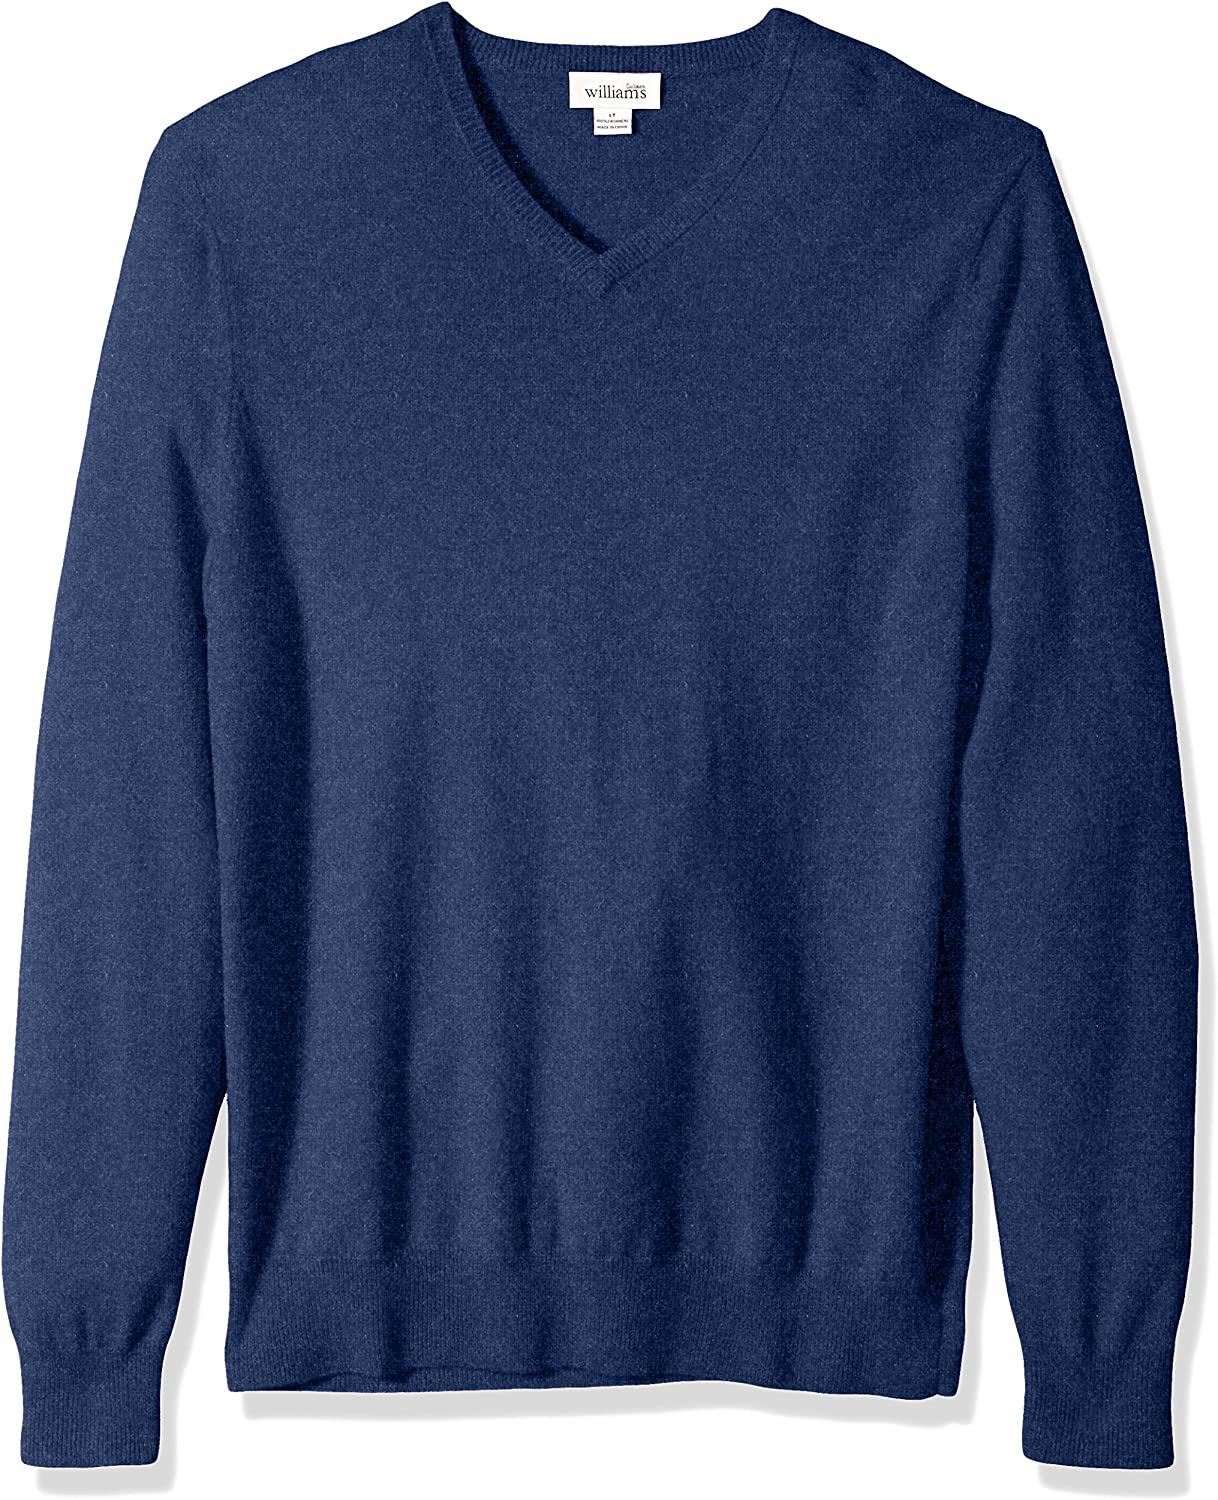 Williams Cashmere Mens 100/% Cashmere Big-Tall Crew Neck Sweater